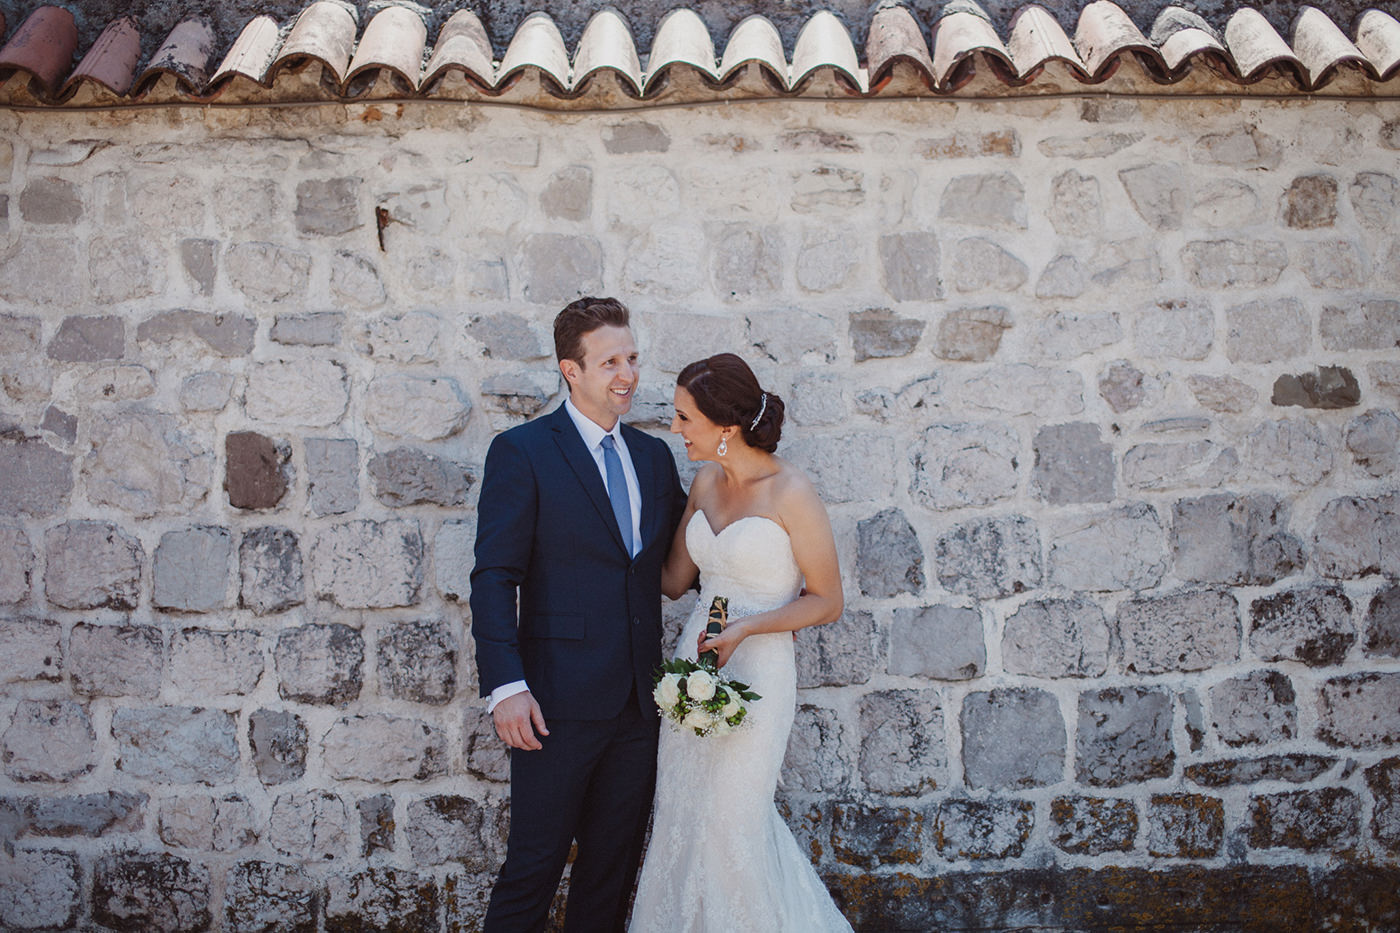 irena-ryan-destination-wedding-photographer-montenegro-kotor-0075